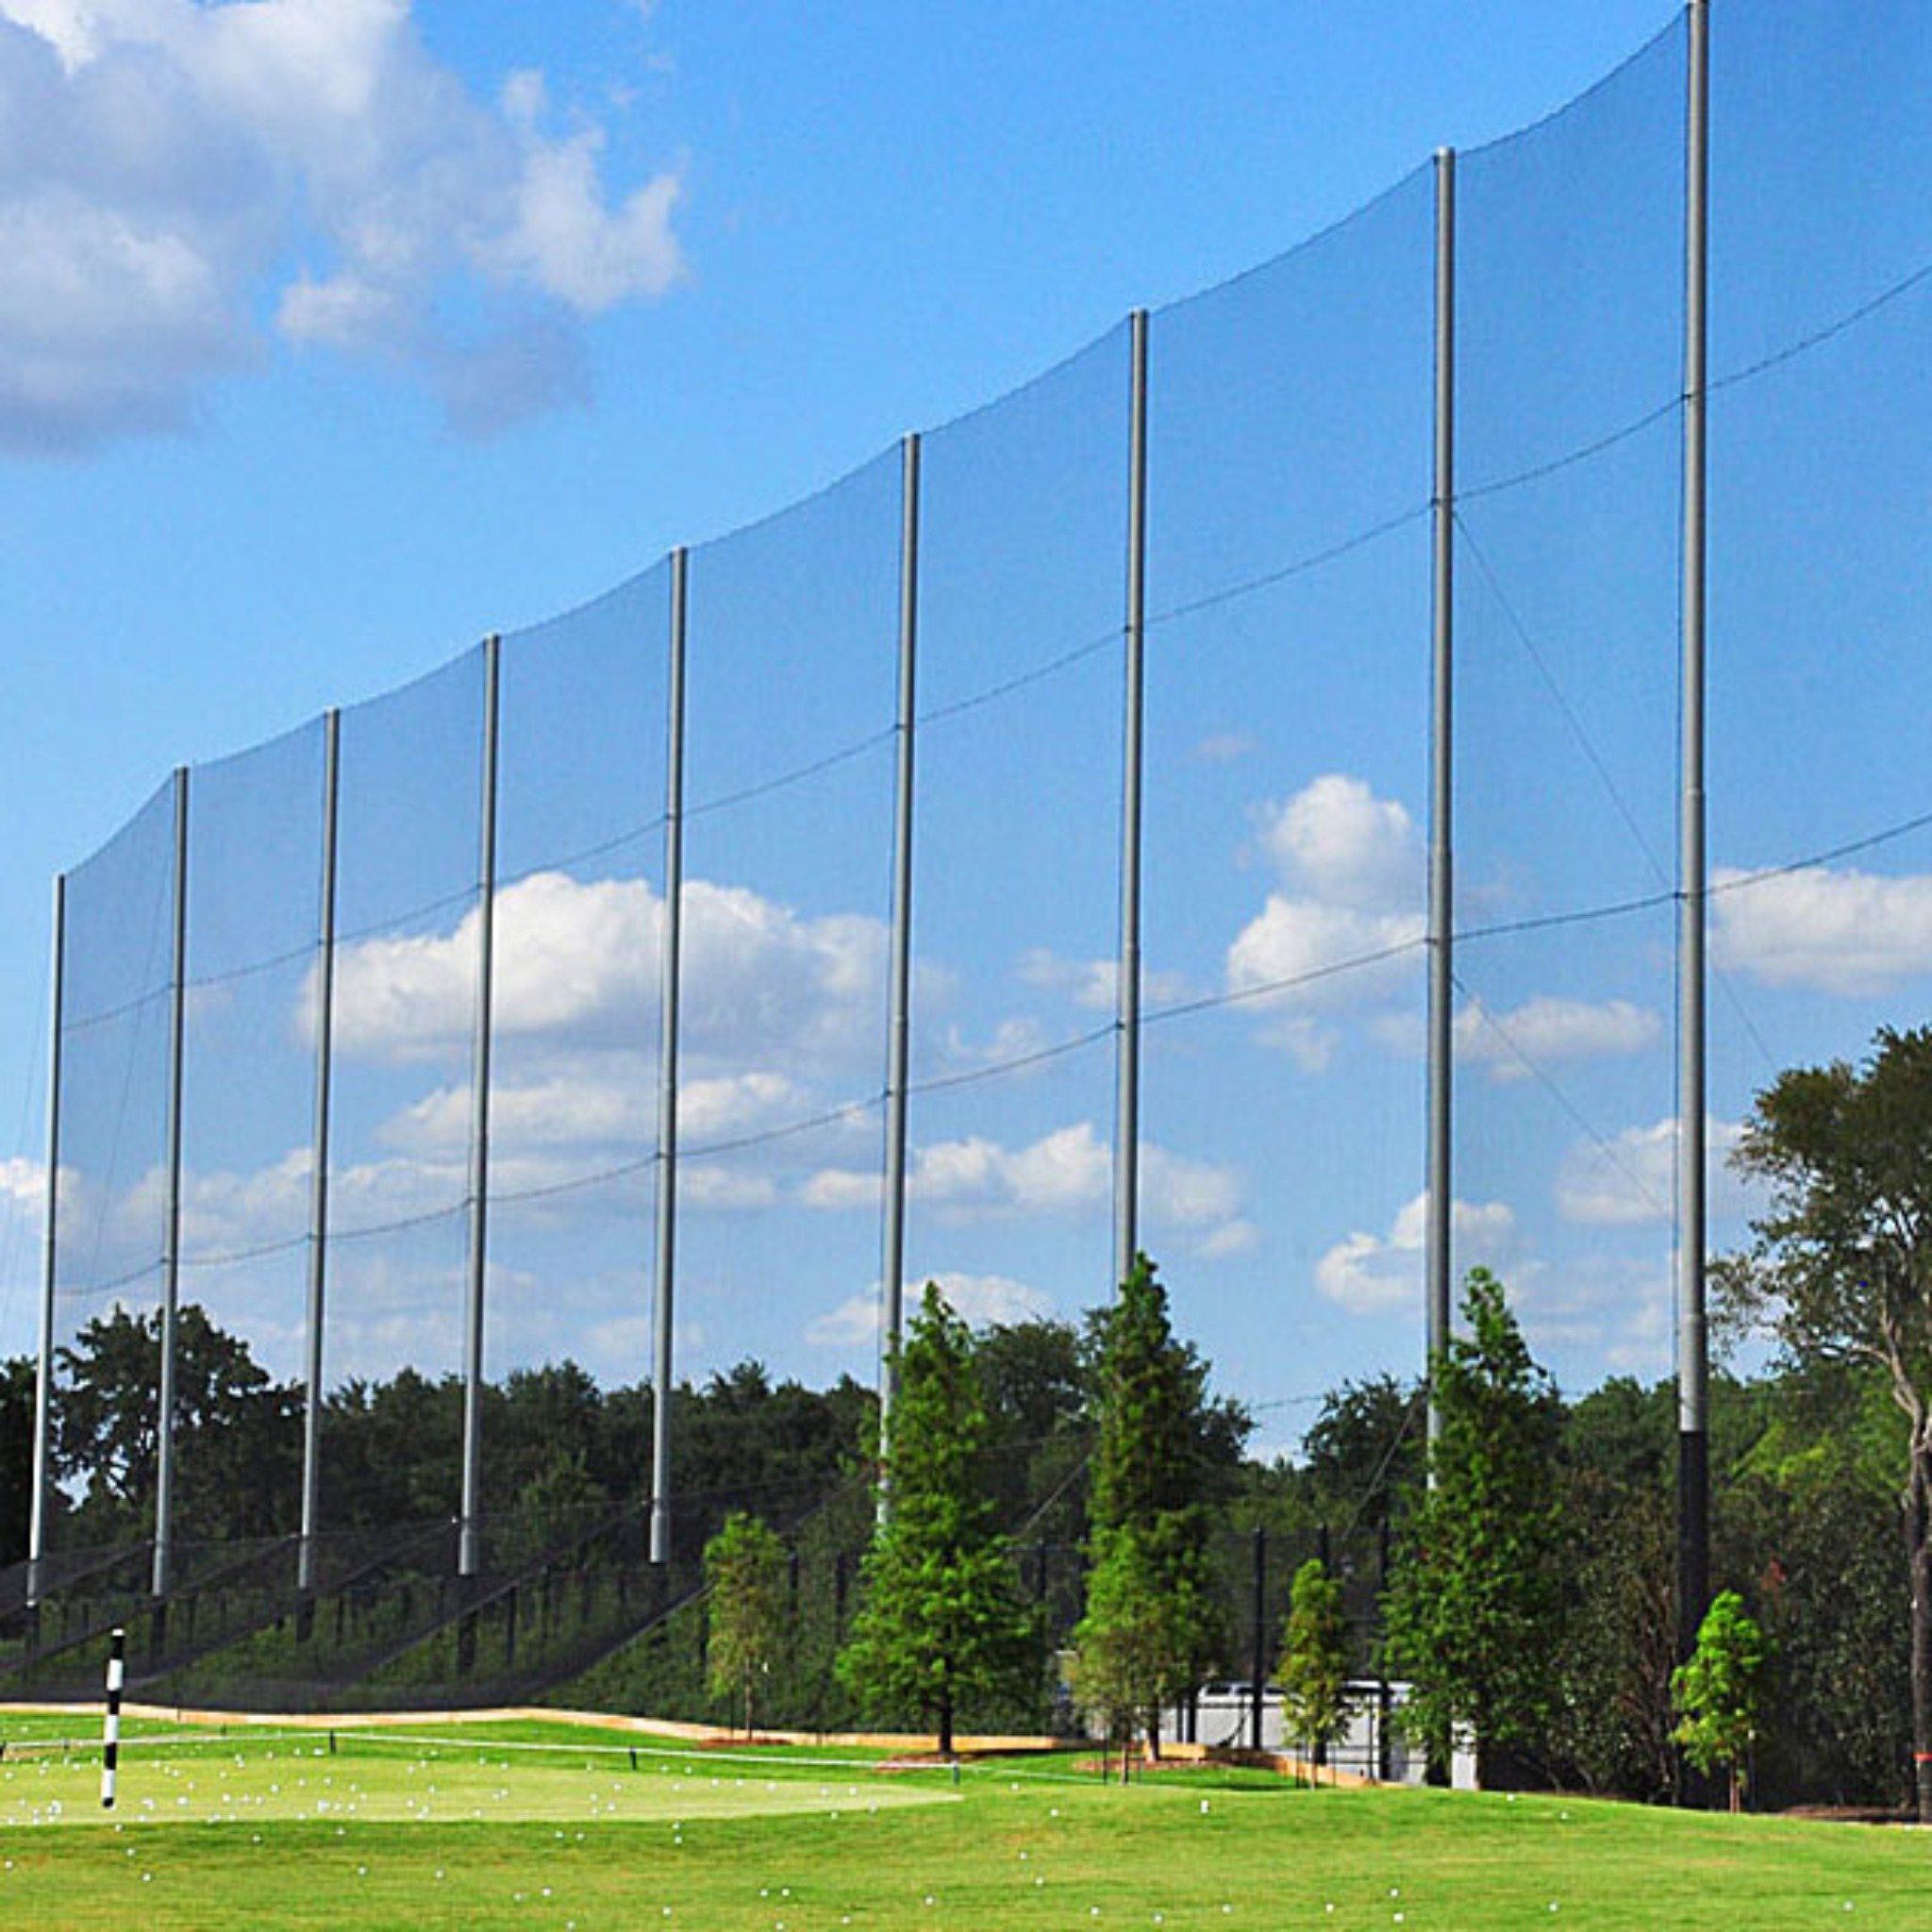 Golf Sports Netting in Many Stocked Sizes or Custom to Your Specs; Use for Barrier Nets at Home, Driving Ranges, Fairways, Golf Courses, & Indoor Golf Net.